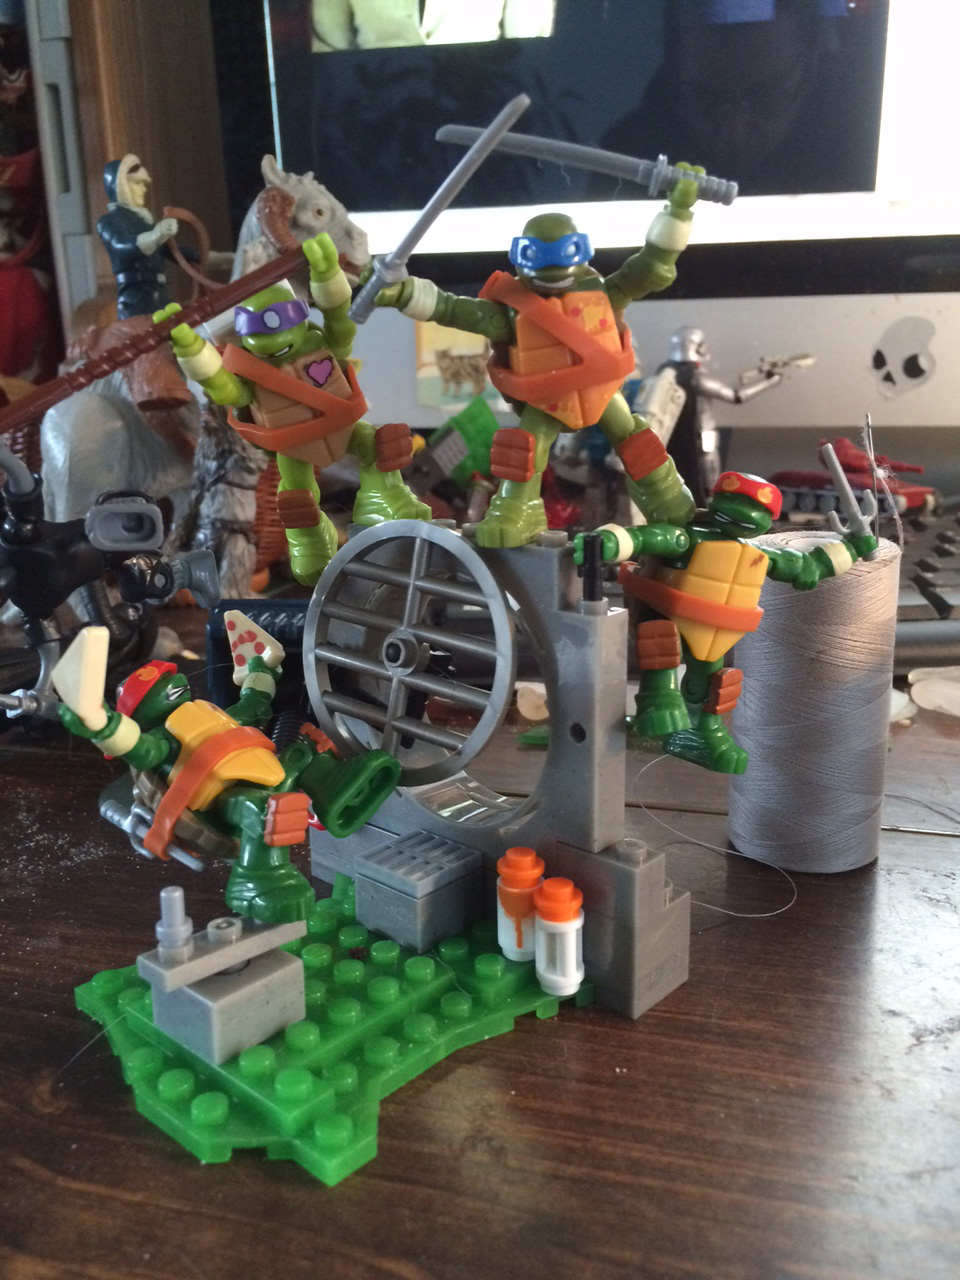 A close up of this section. These tiny TMNT figures are fun and distracting!